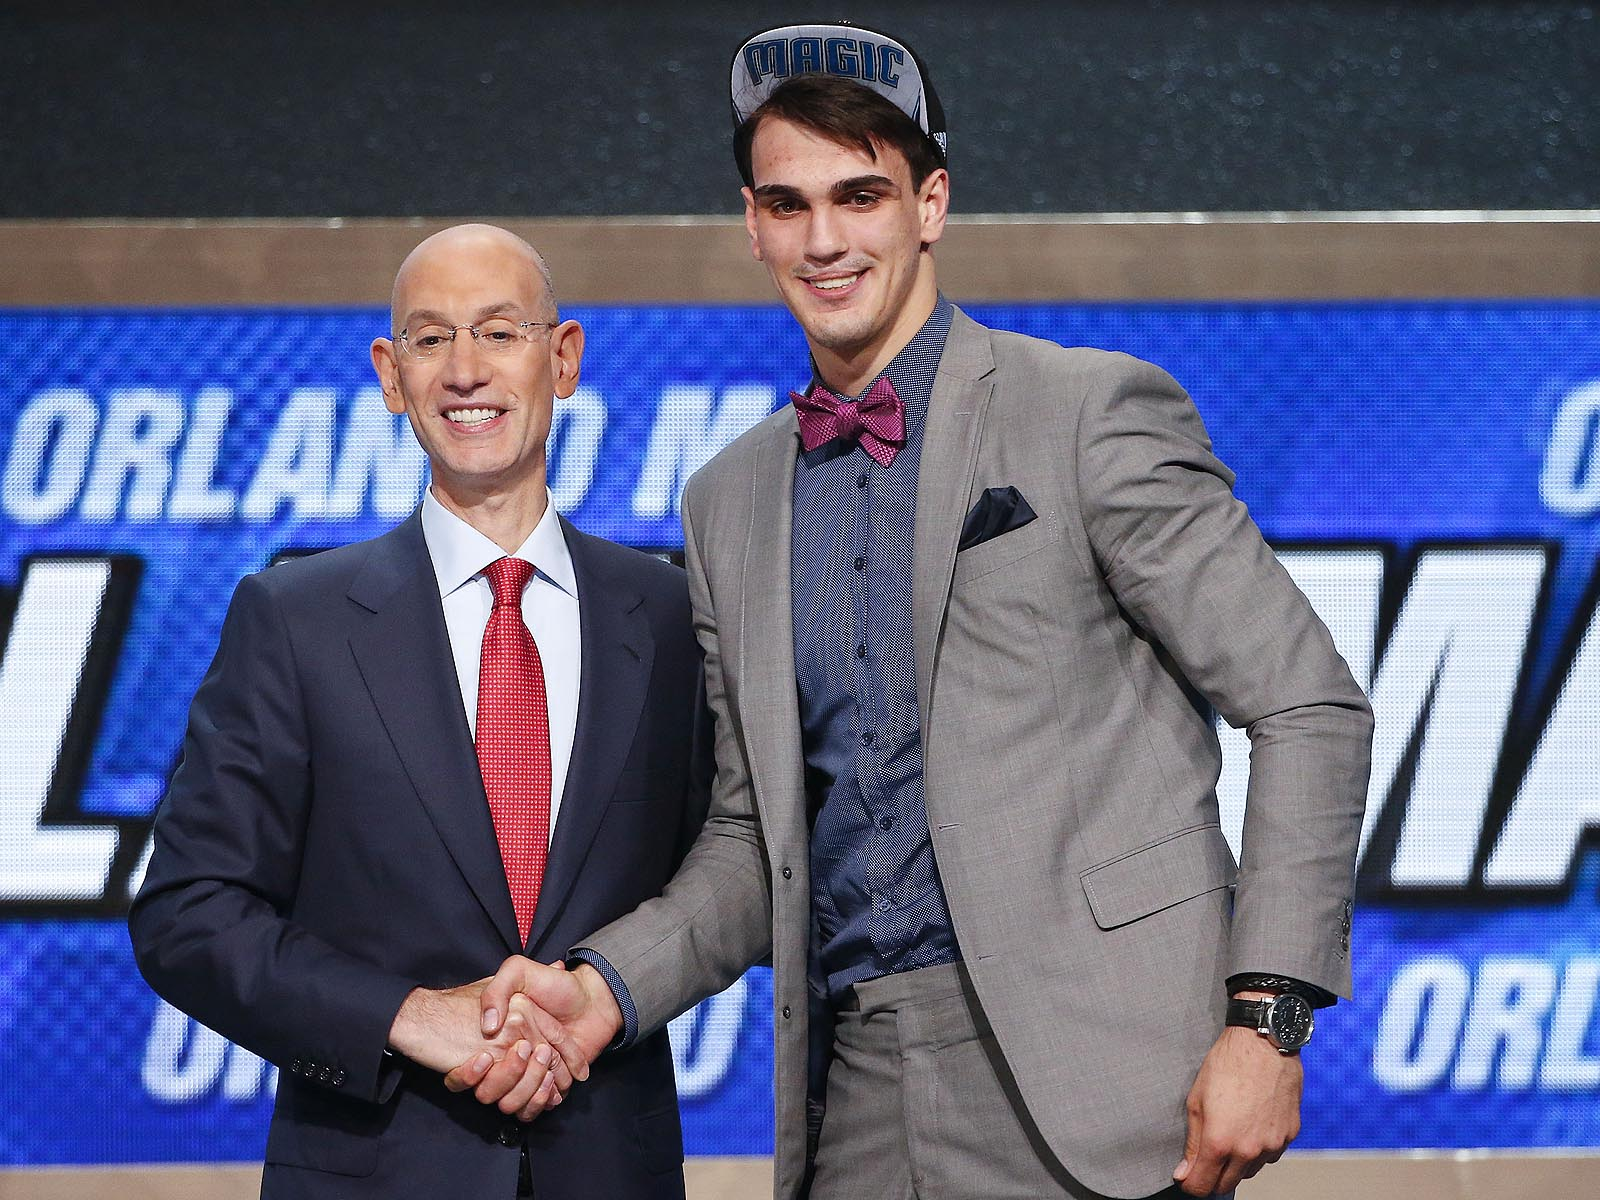 Saric won't be playing in the NBA for a few years, but he already has the style down with this ultra-preppy, beltless look.